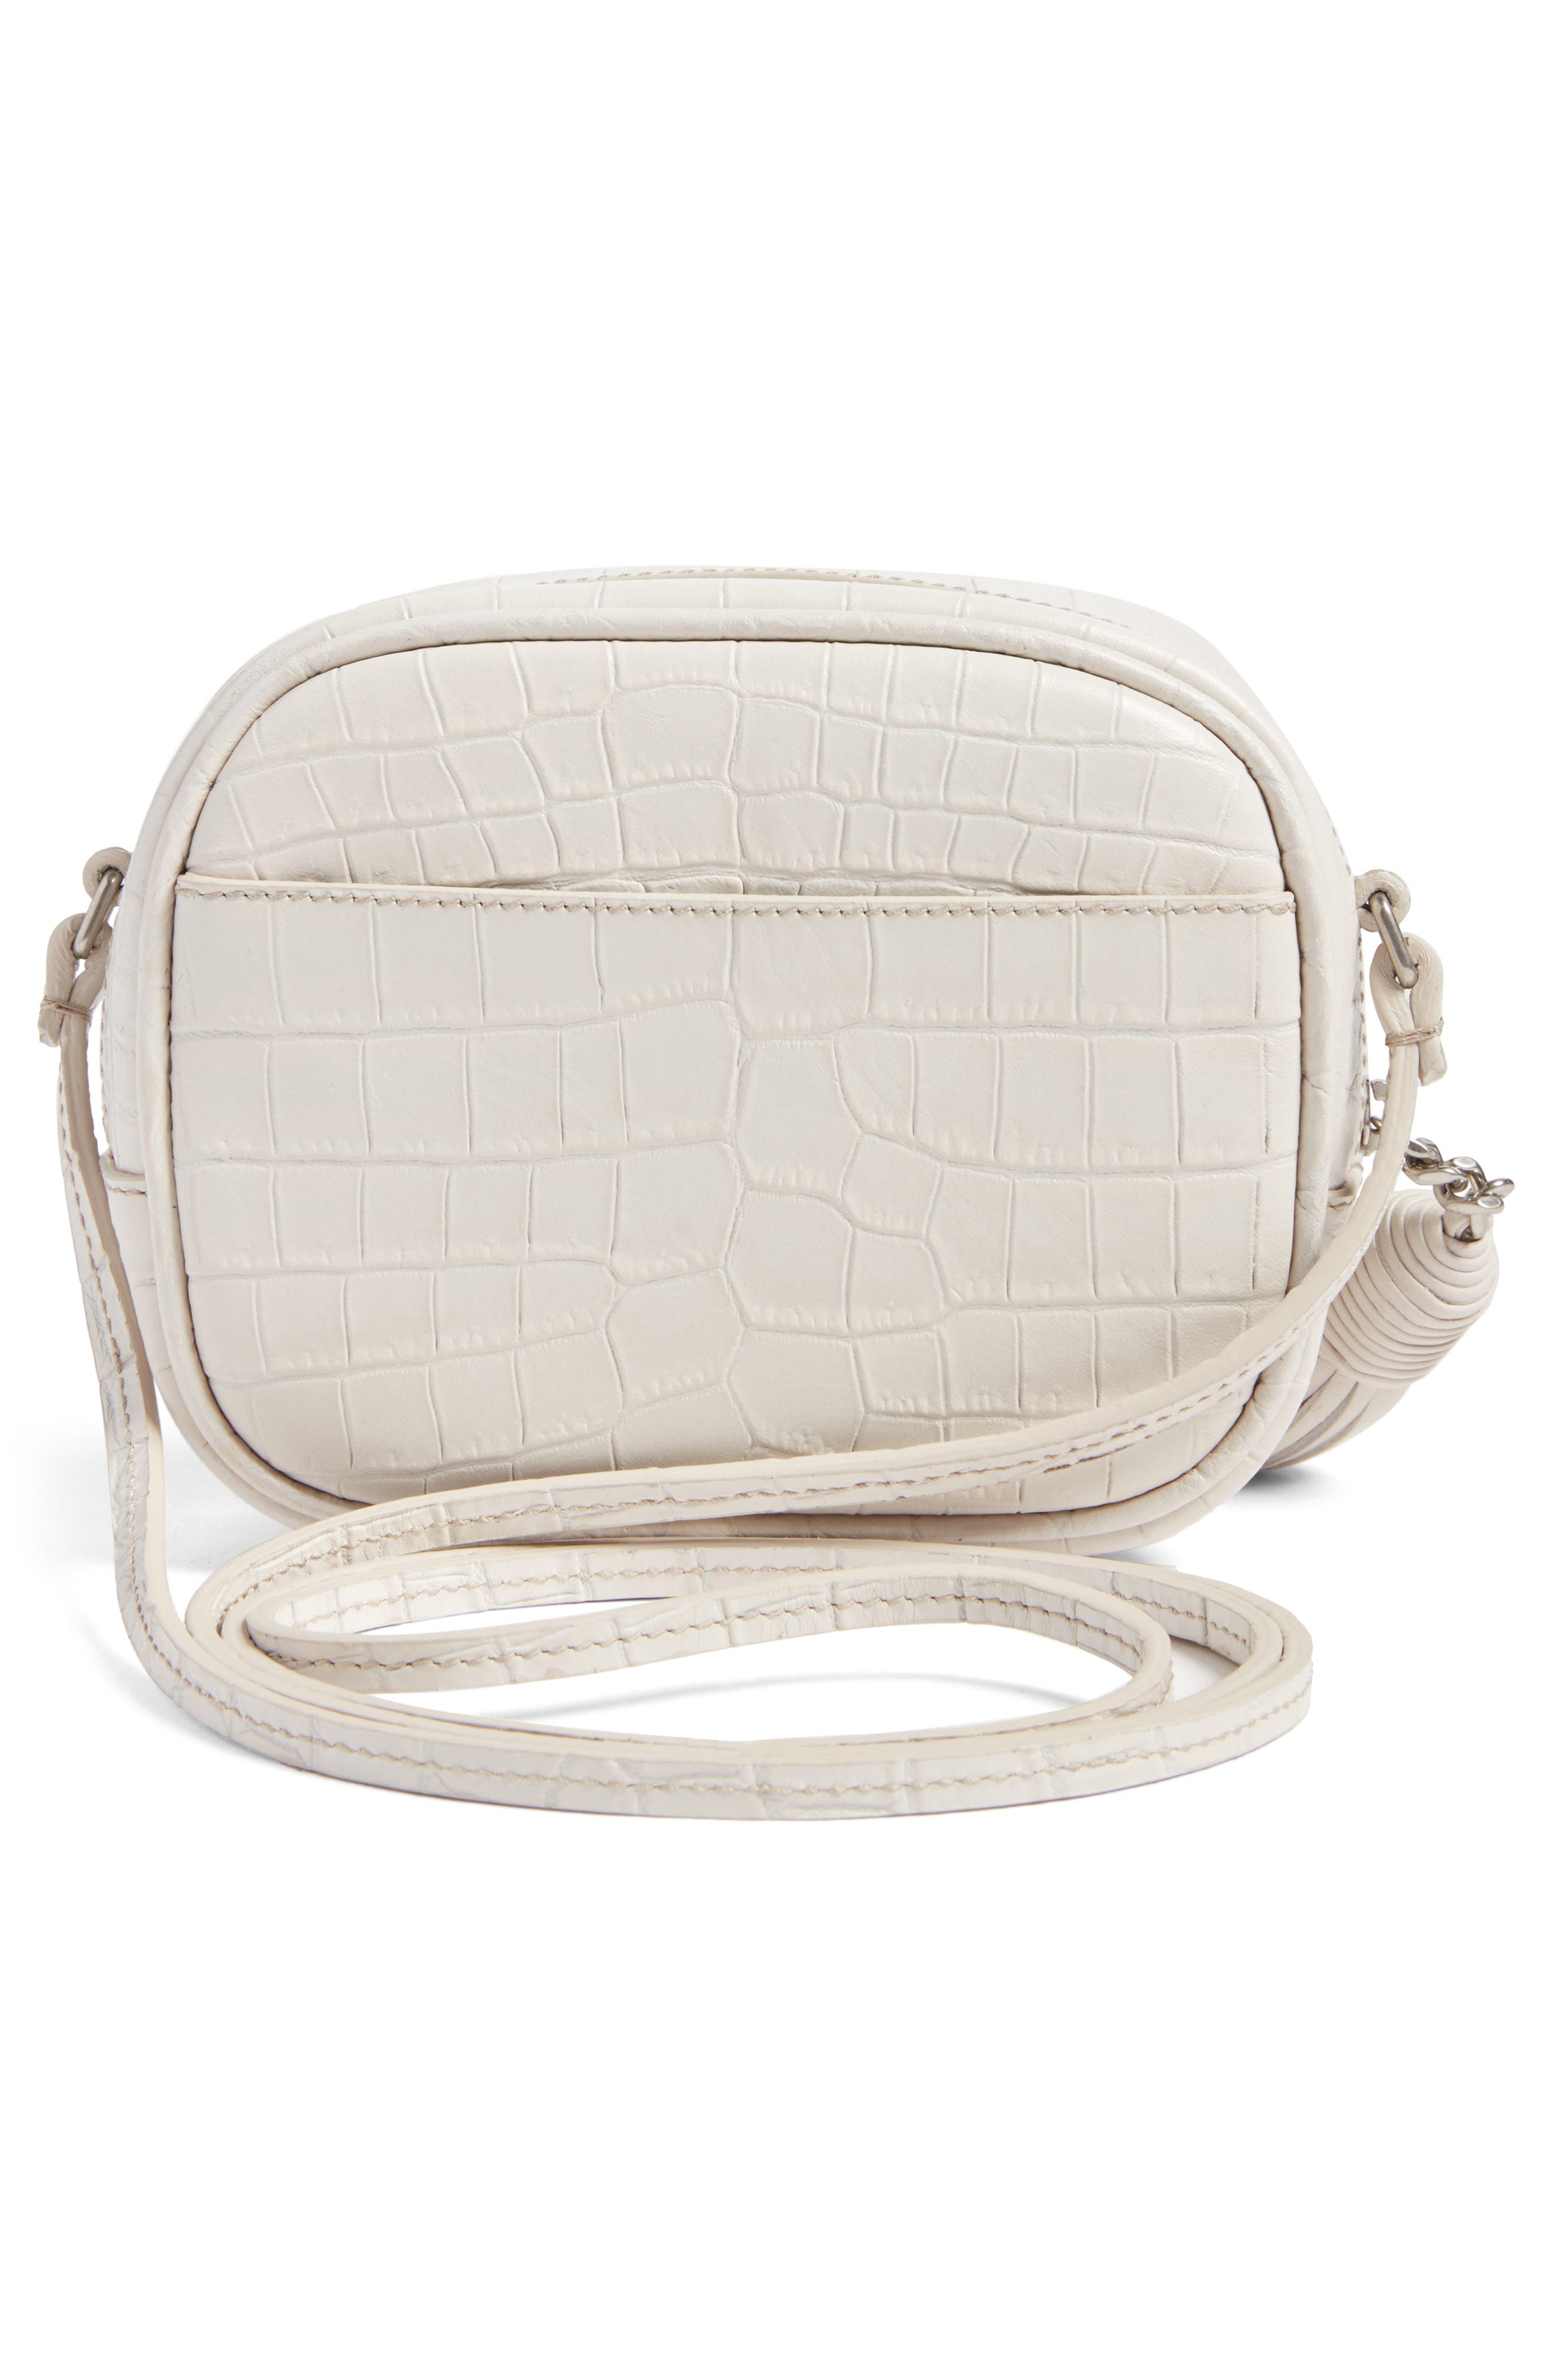 Monogram Blogger Leather Crossbody Bag,                             Alternate thumbnail 2, color,                             Icy White